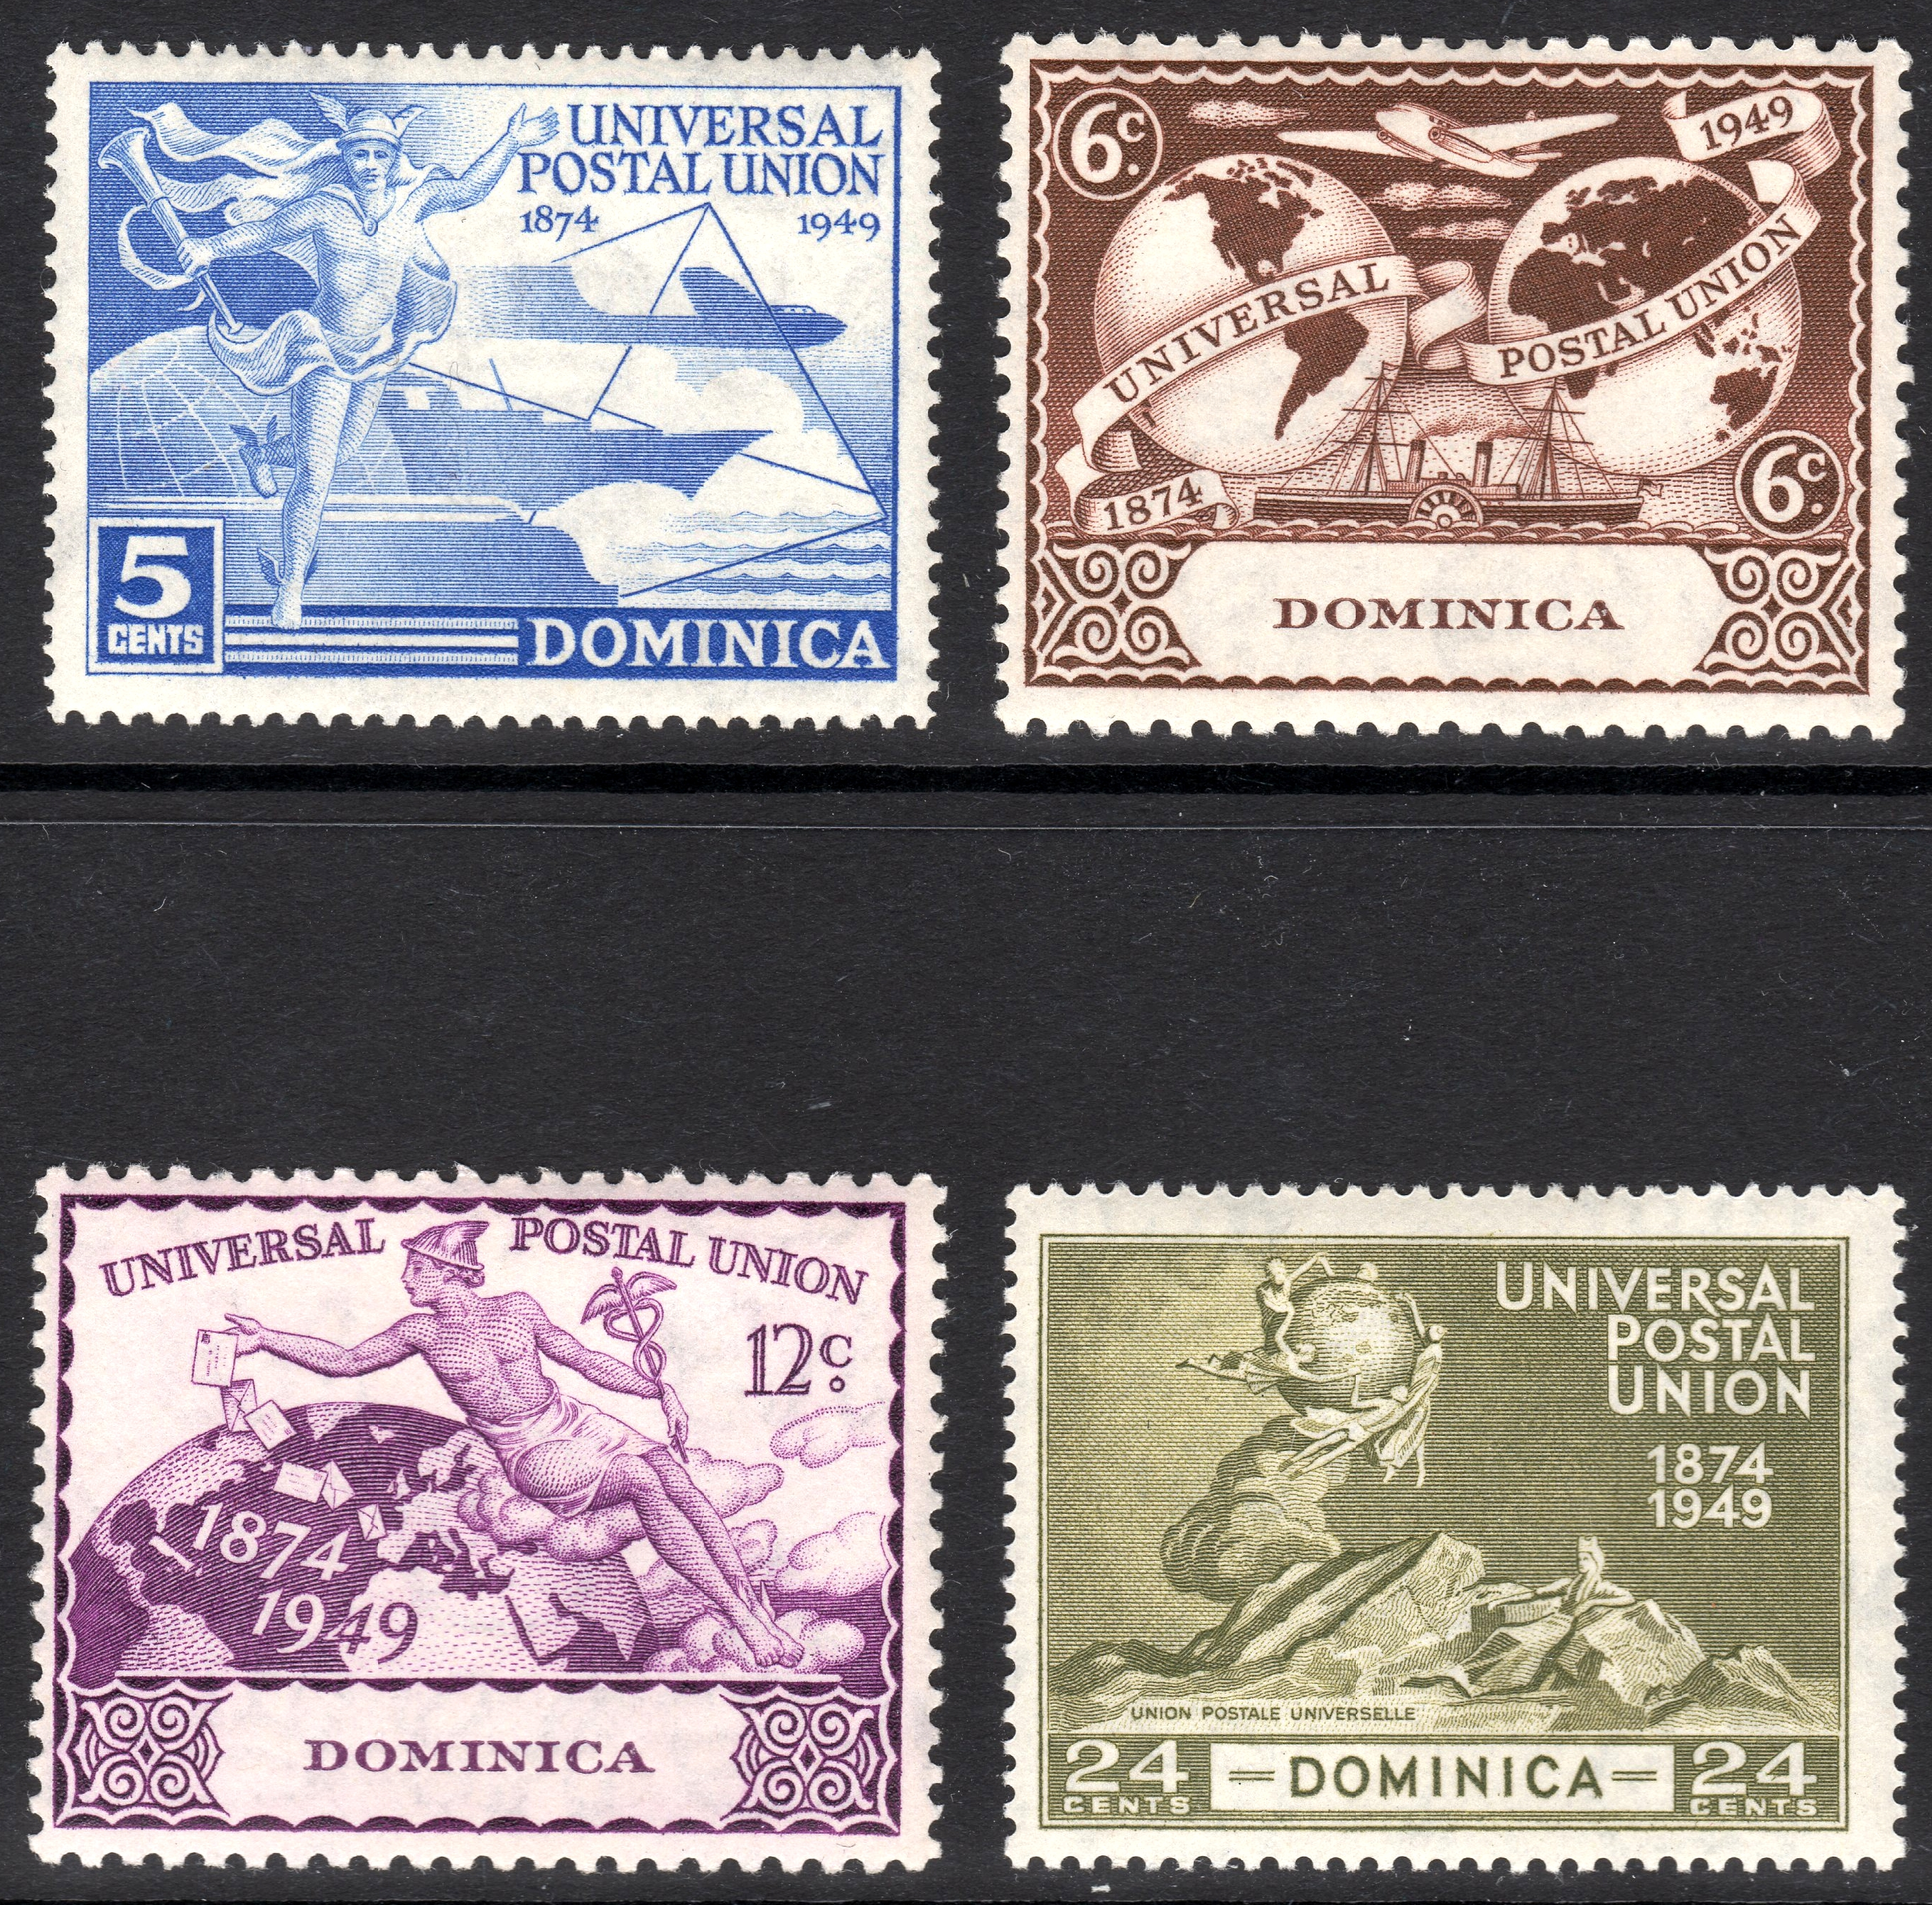 Dominica 1949 UPU stamps